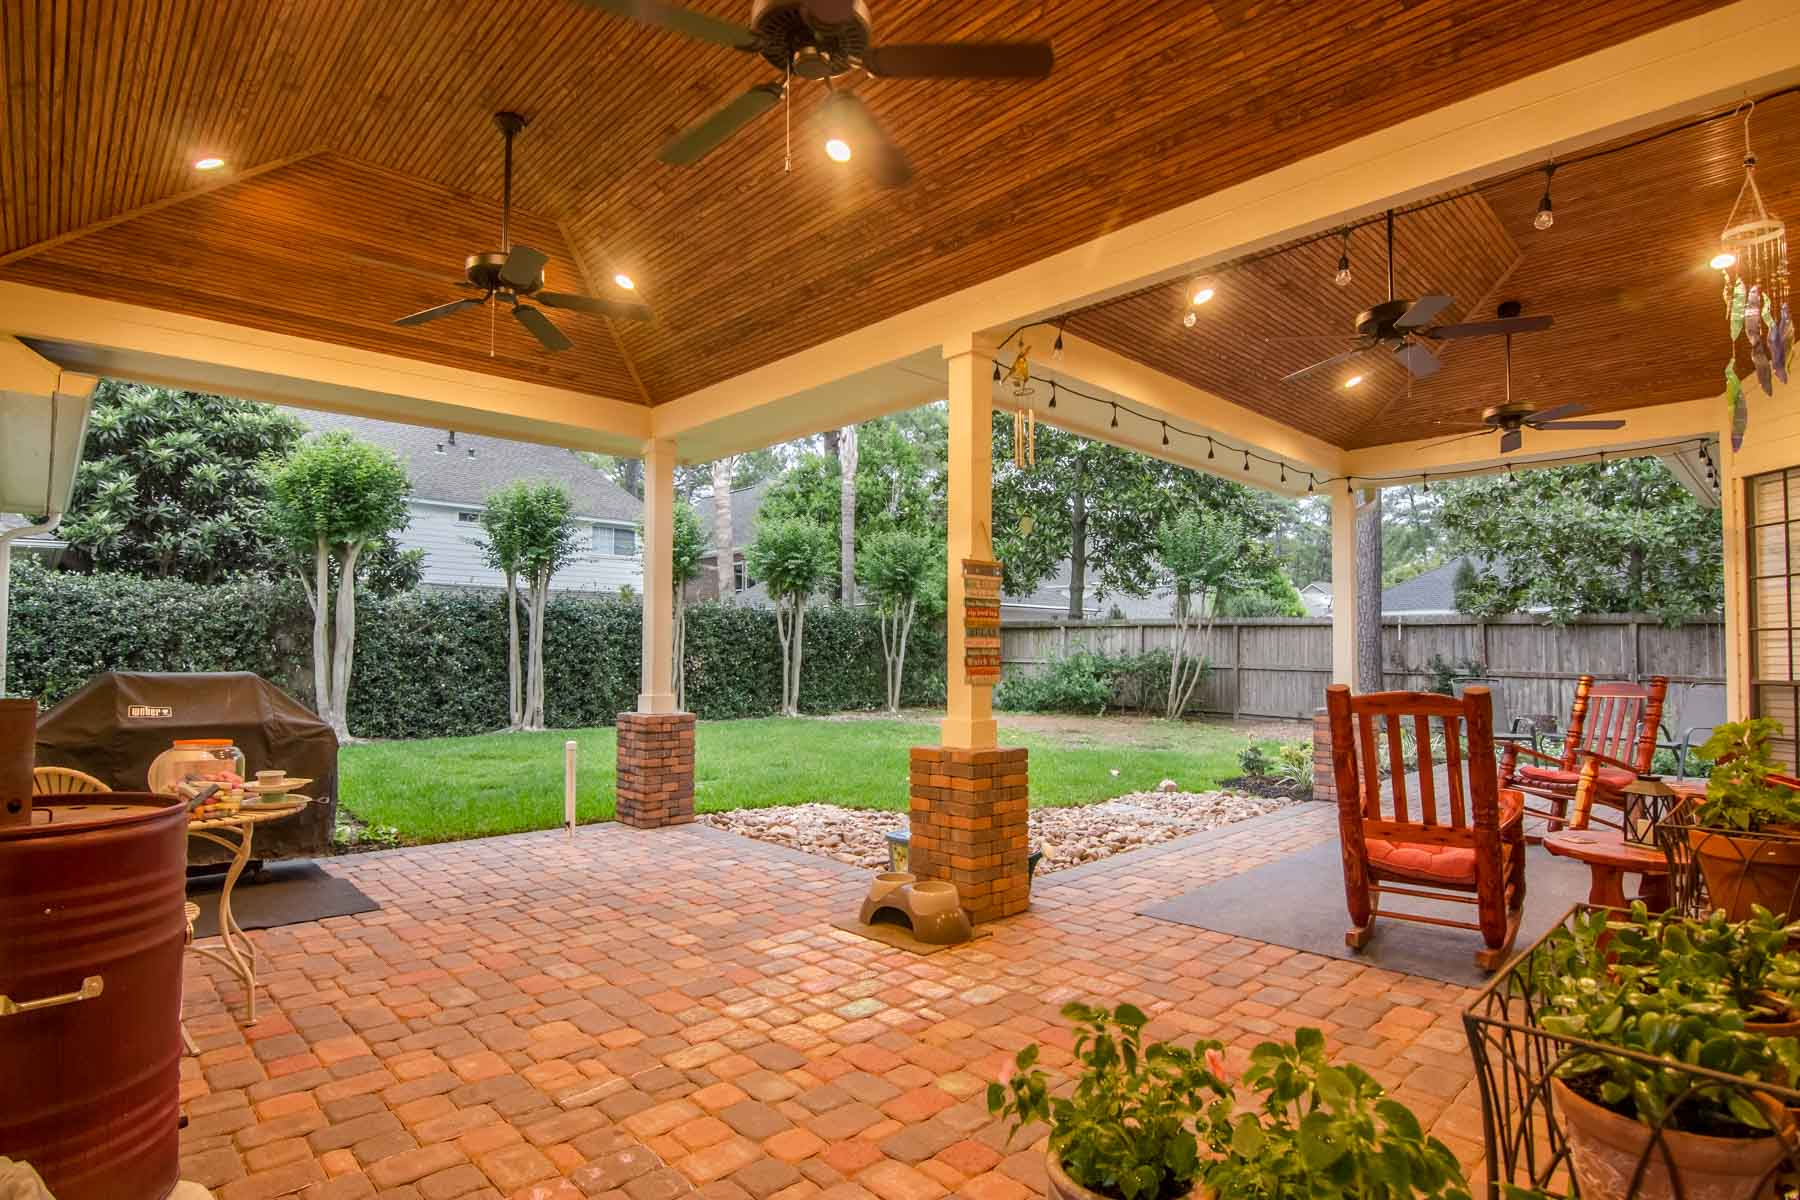 Hip Roof Patio Cover in Cypress Texas  HHI Patio Covers